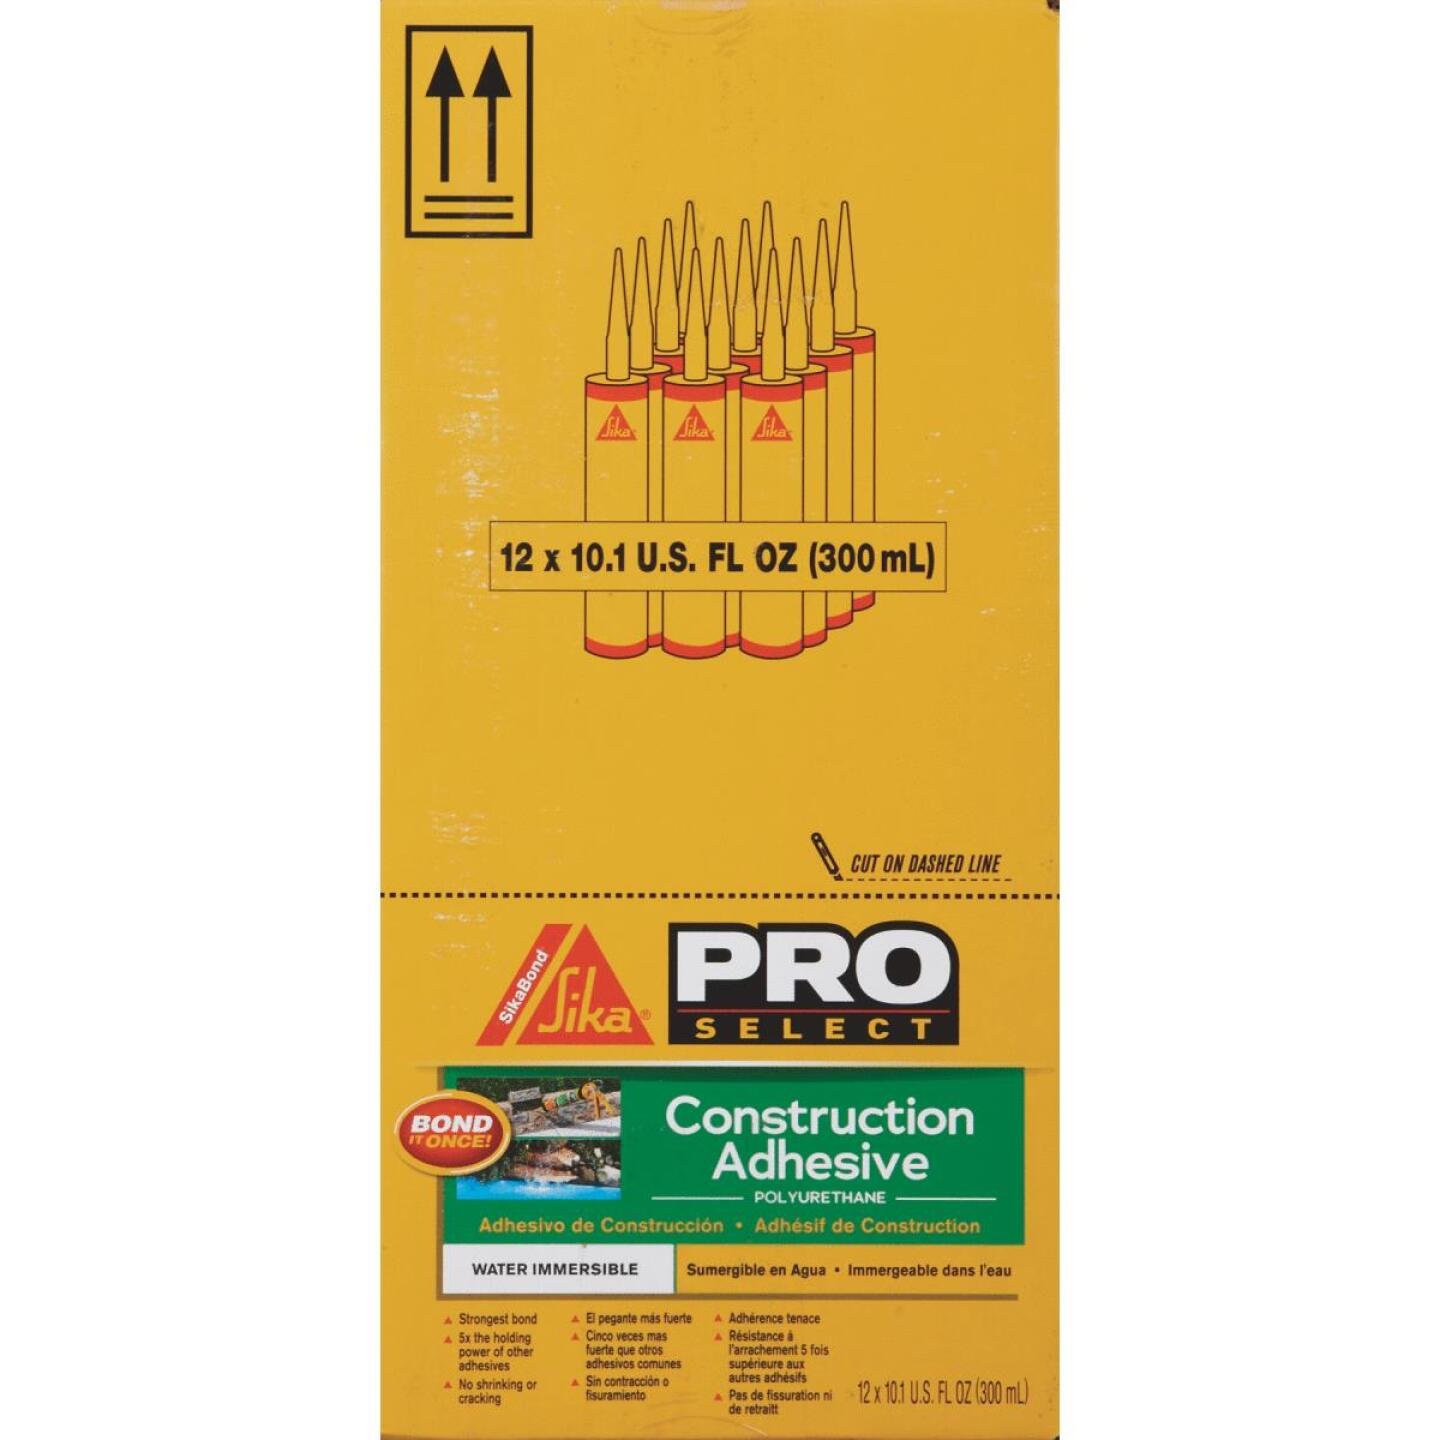 SikaBond Pro Select 10 Oz. High Performance Construction Adhesive Image 2